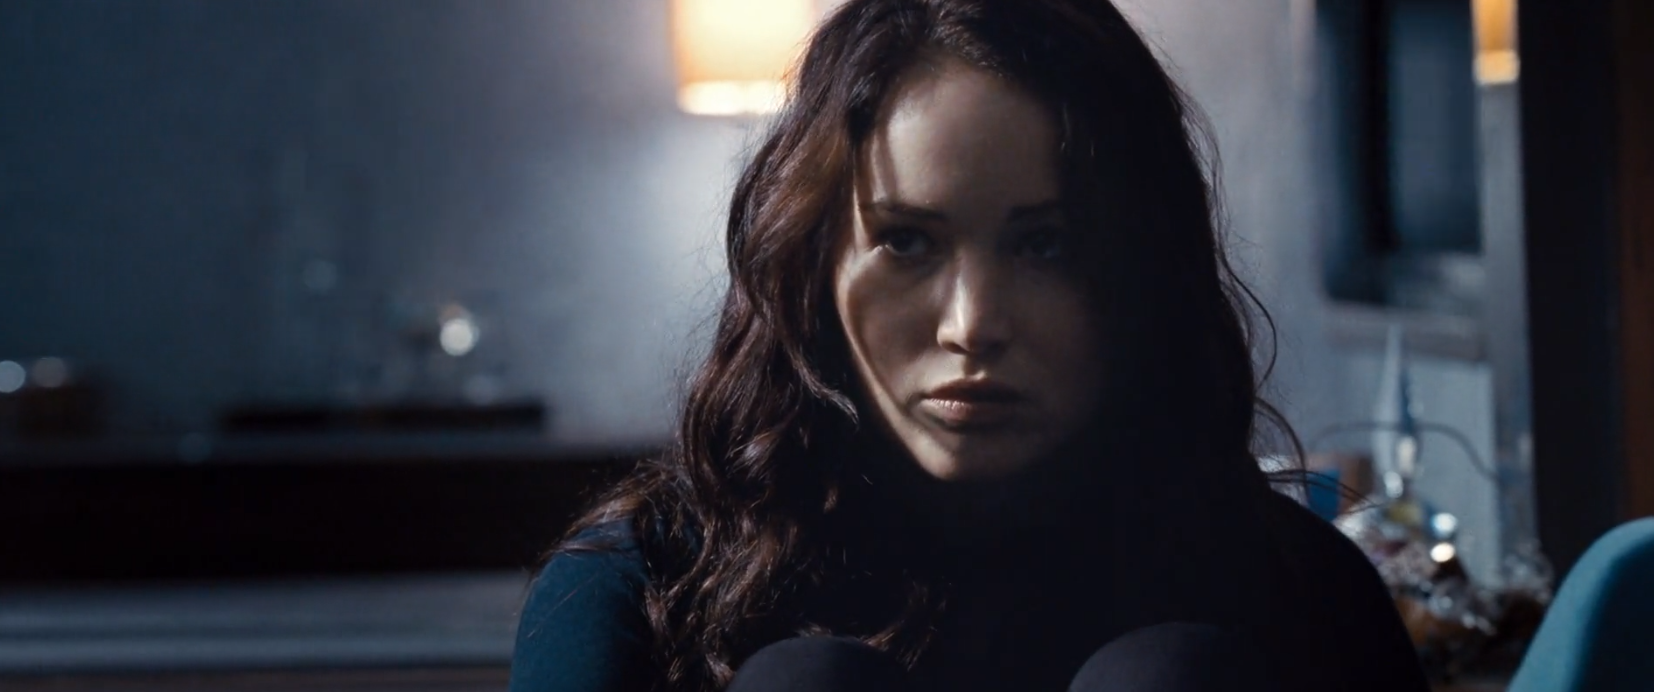 Jennifer-Lawrence-Katniss-hunger-games-long-wavy-down-hair ...